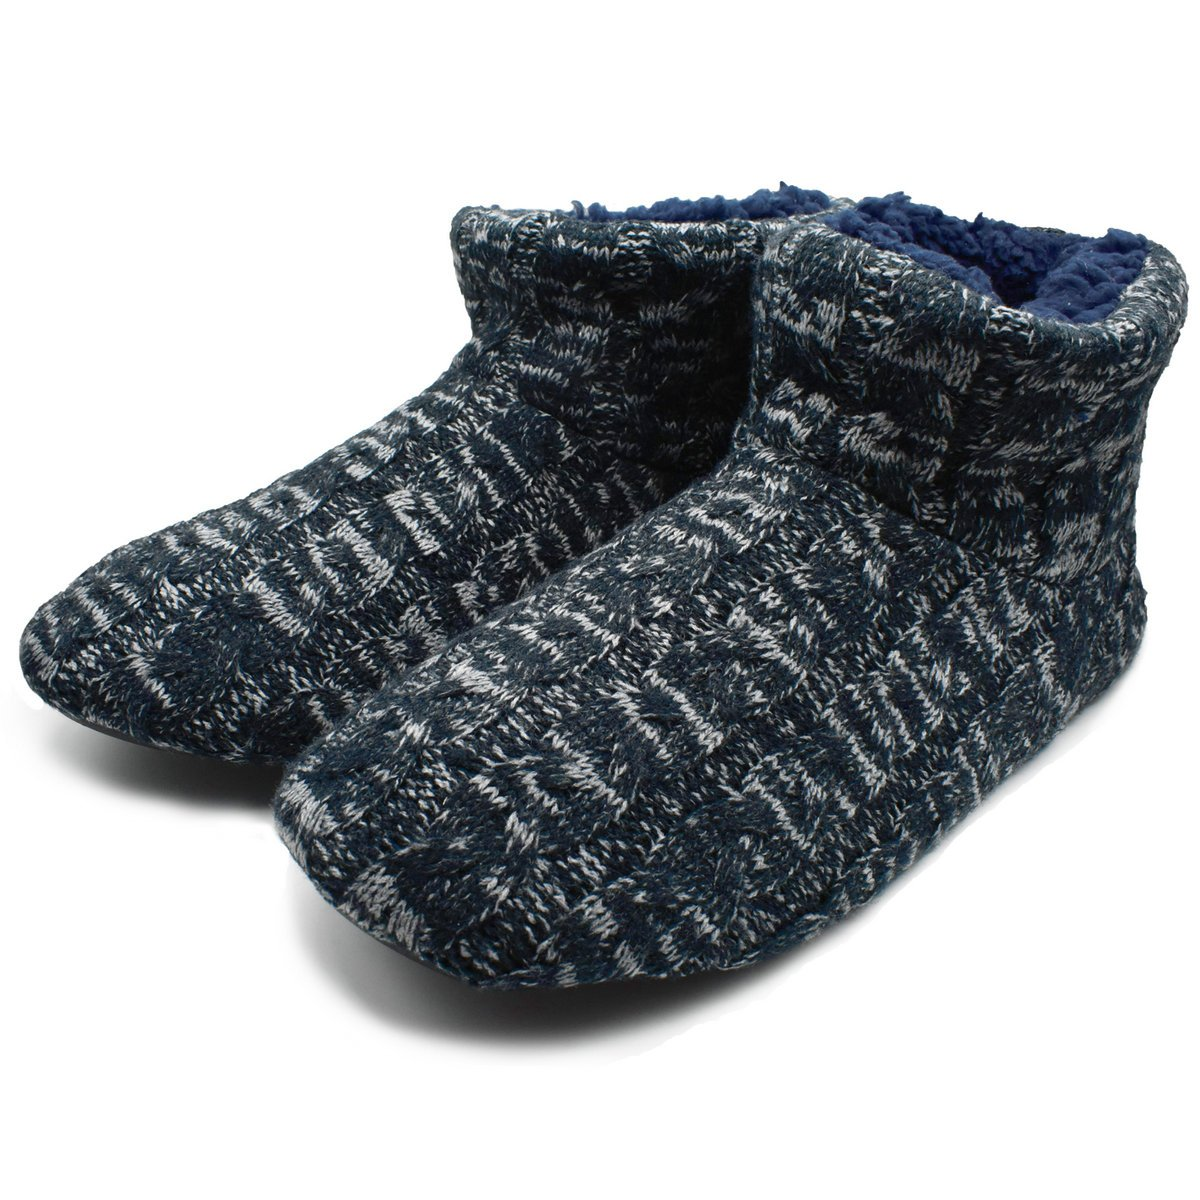 SunbowStar Men's Faux Fur Lined Knit Anti-Slip Indoor Slippers Boots House Slipper Bootie,Navy Blue-11 D(M) US